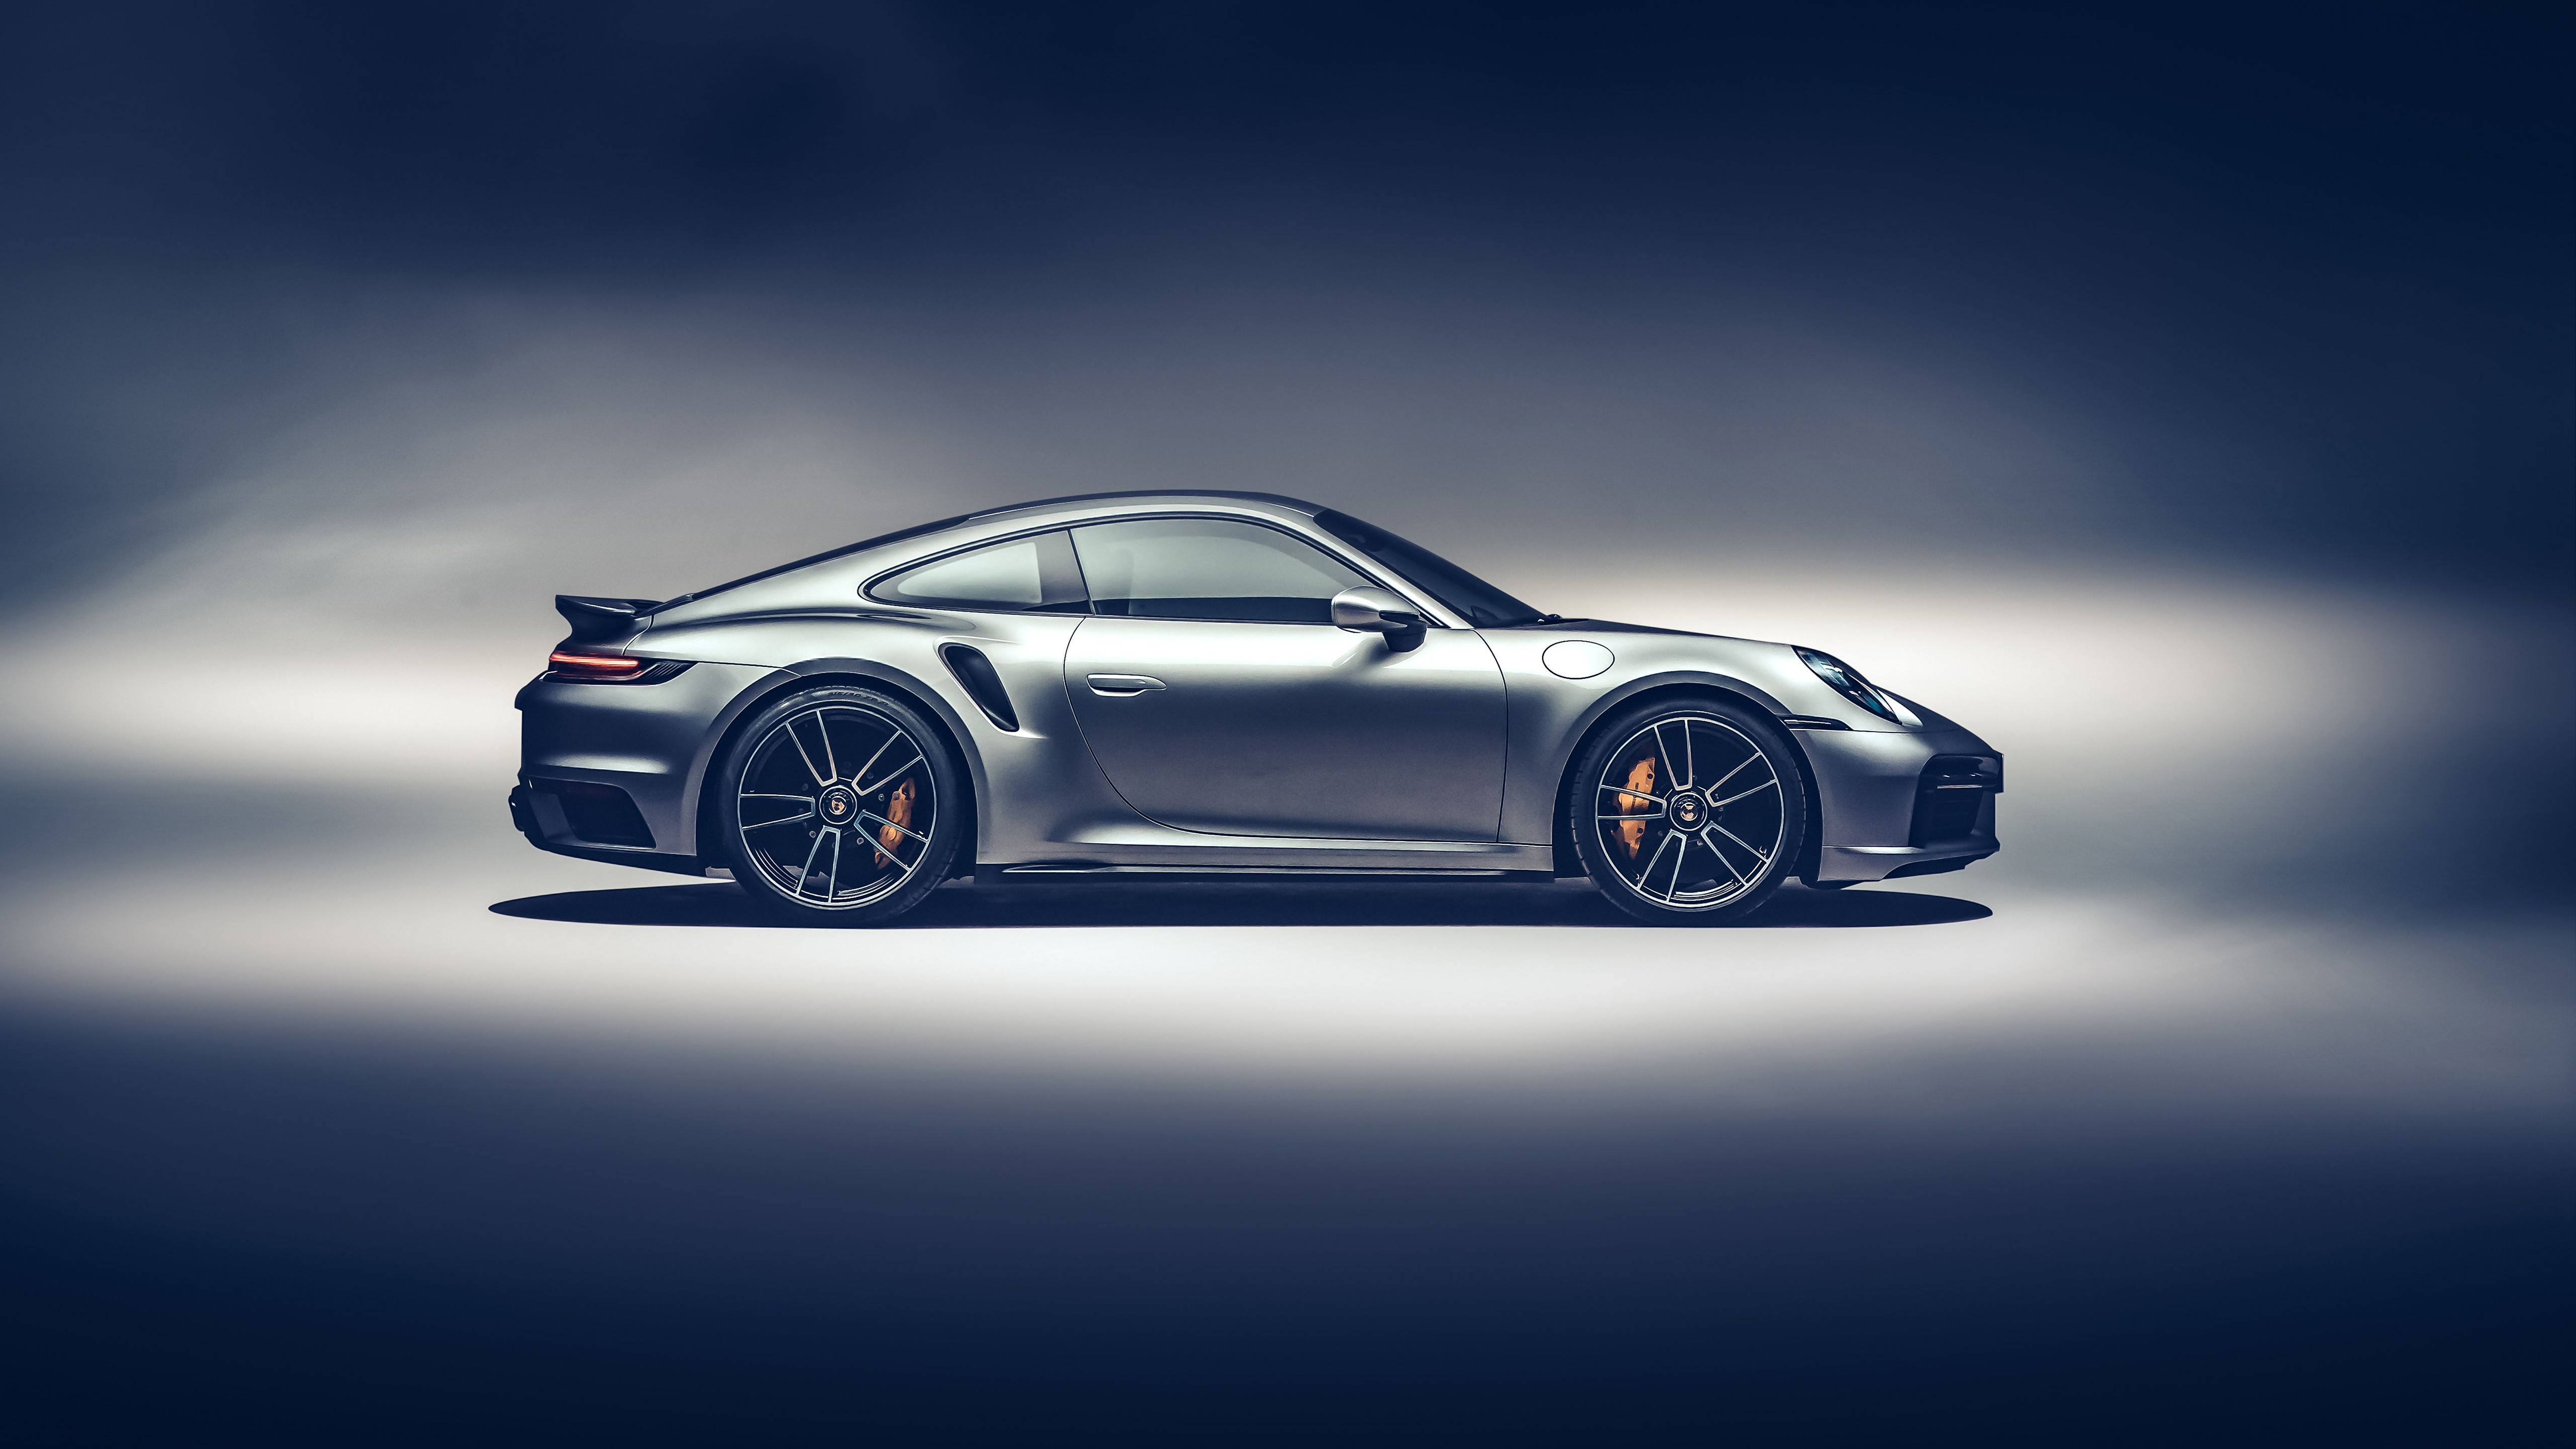 Wallpaper Silver Porsche 911 Turbo S 2020 car side view on gray background